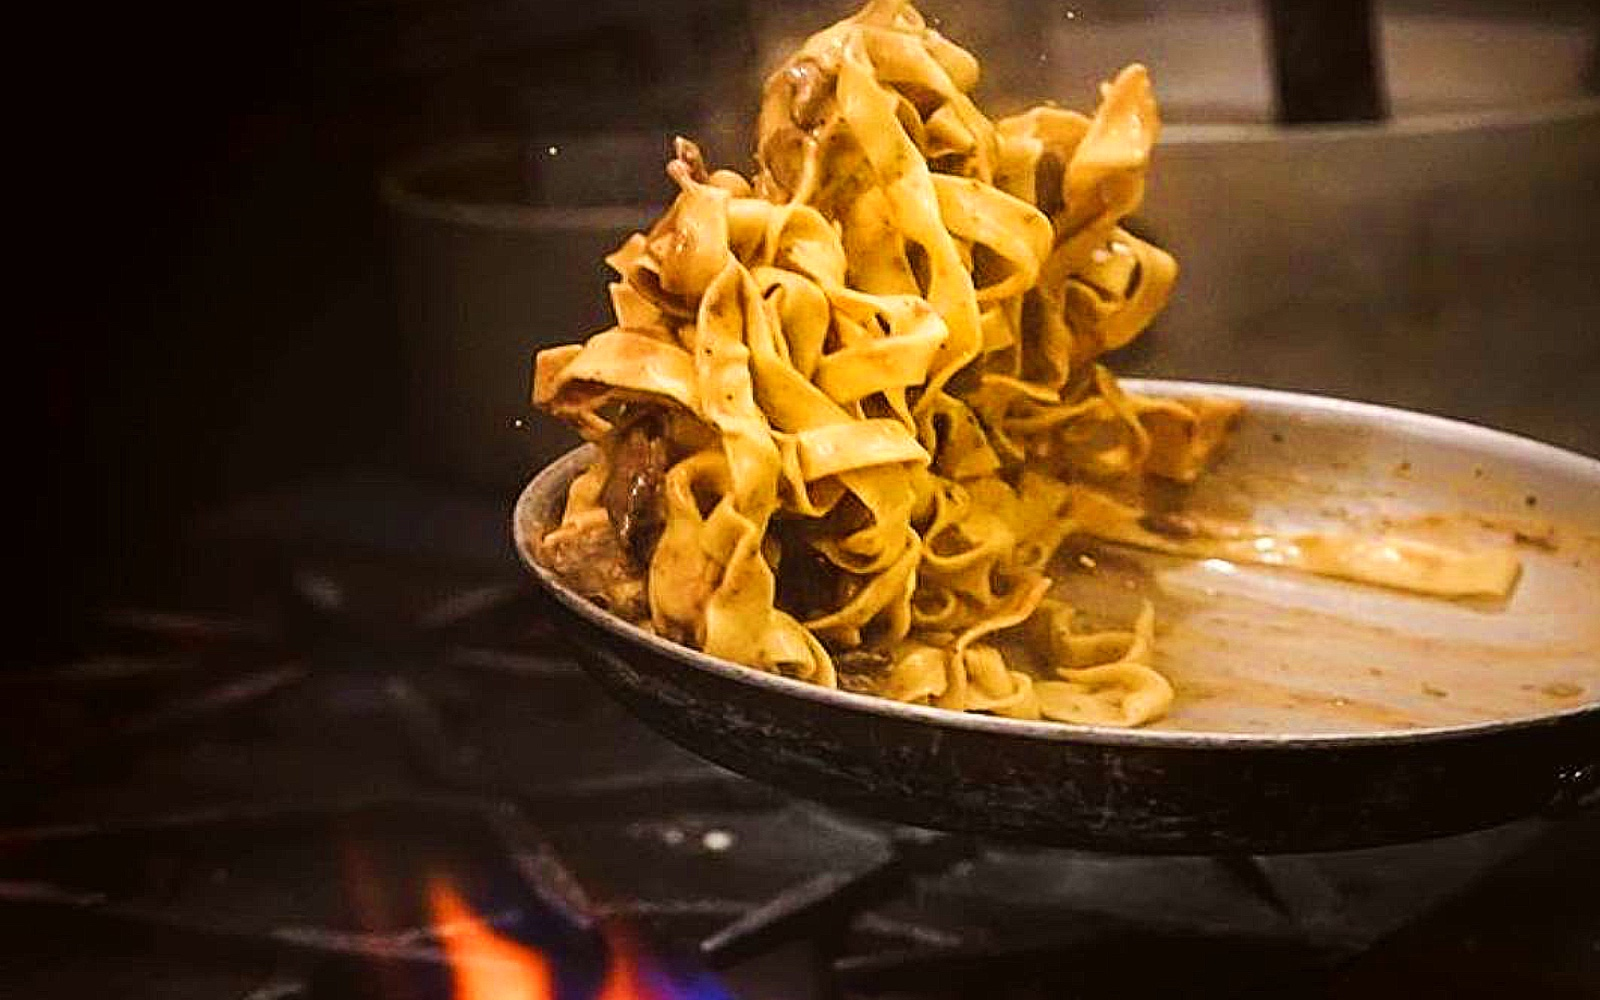 A plate of pasta is flipped in a pan